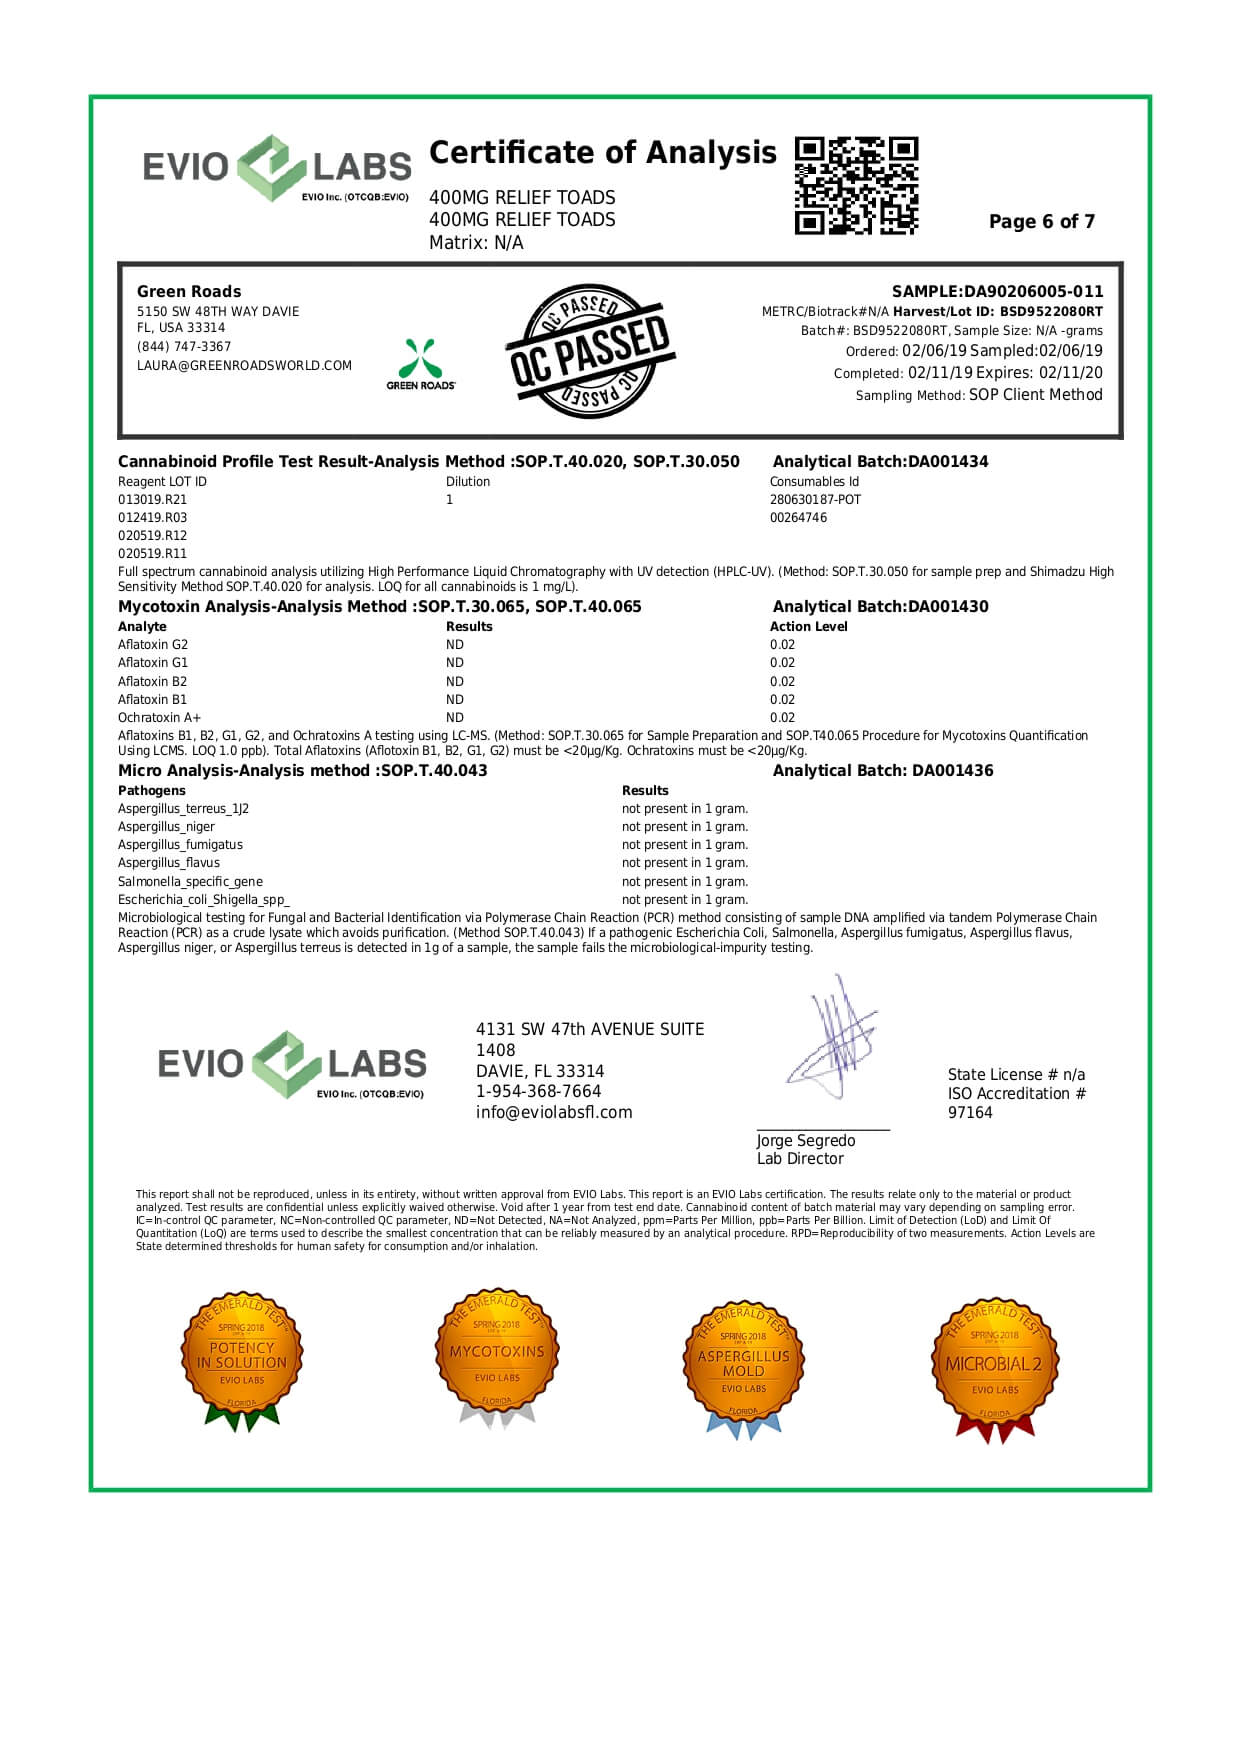 Green Roads CBD Edible Relief Toads 400mg Lab Report